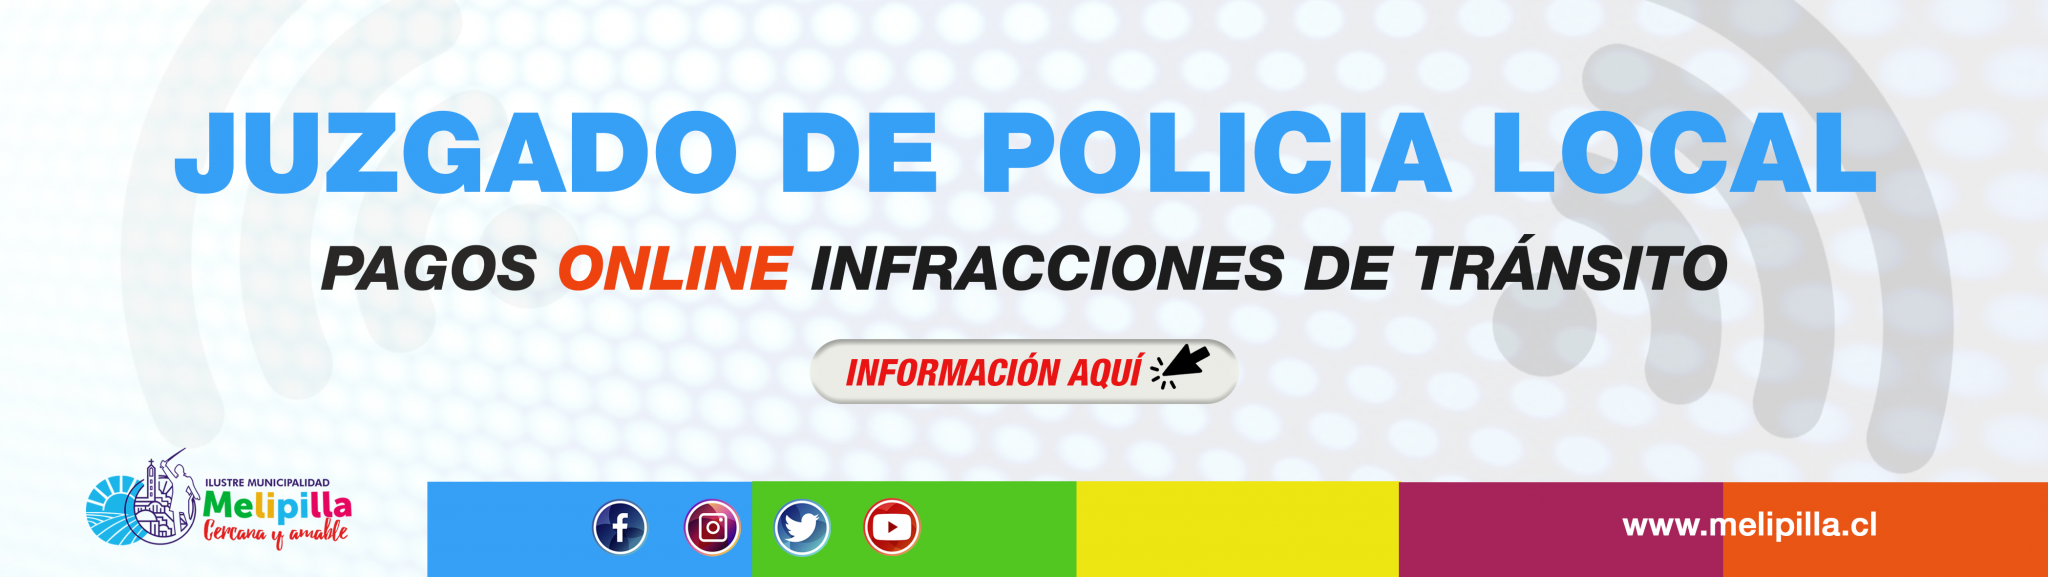 JUZGADO POLICIA LOCAL ONLINE